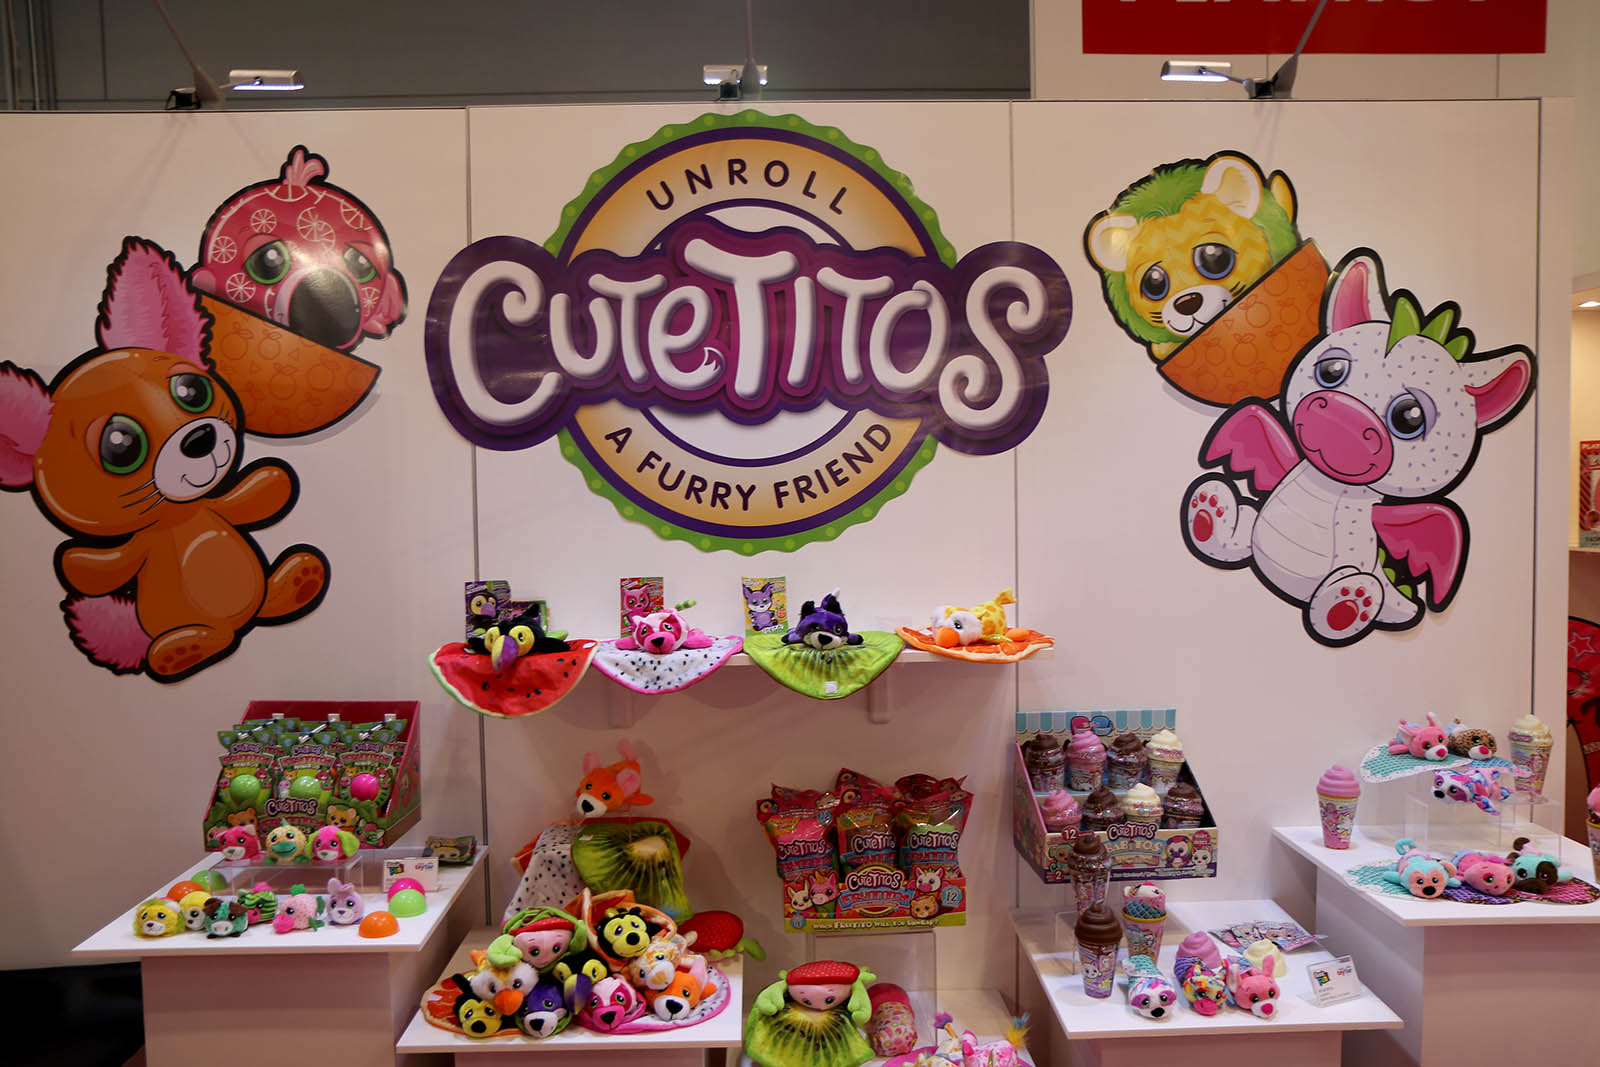 Basic Fun At Toy Fair 2020 Cutetitos Care Bears And More The Nerdy Today we are unboxing cute new cutetitos pizzaitos by basic fun. at toy fair 2020 cutetitos care bears